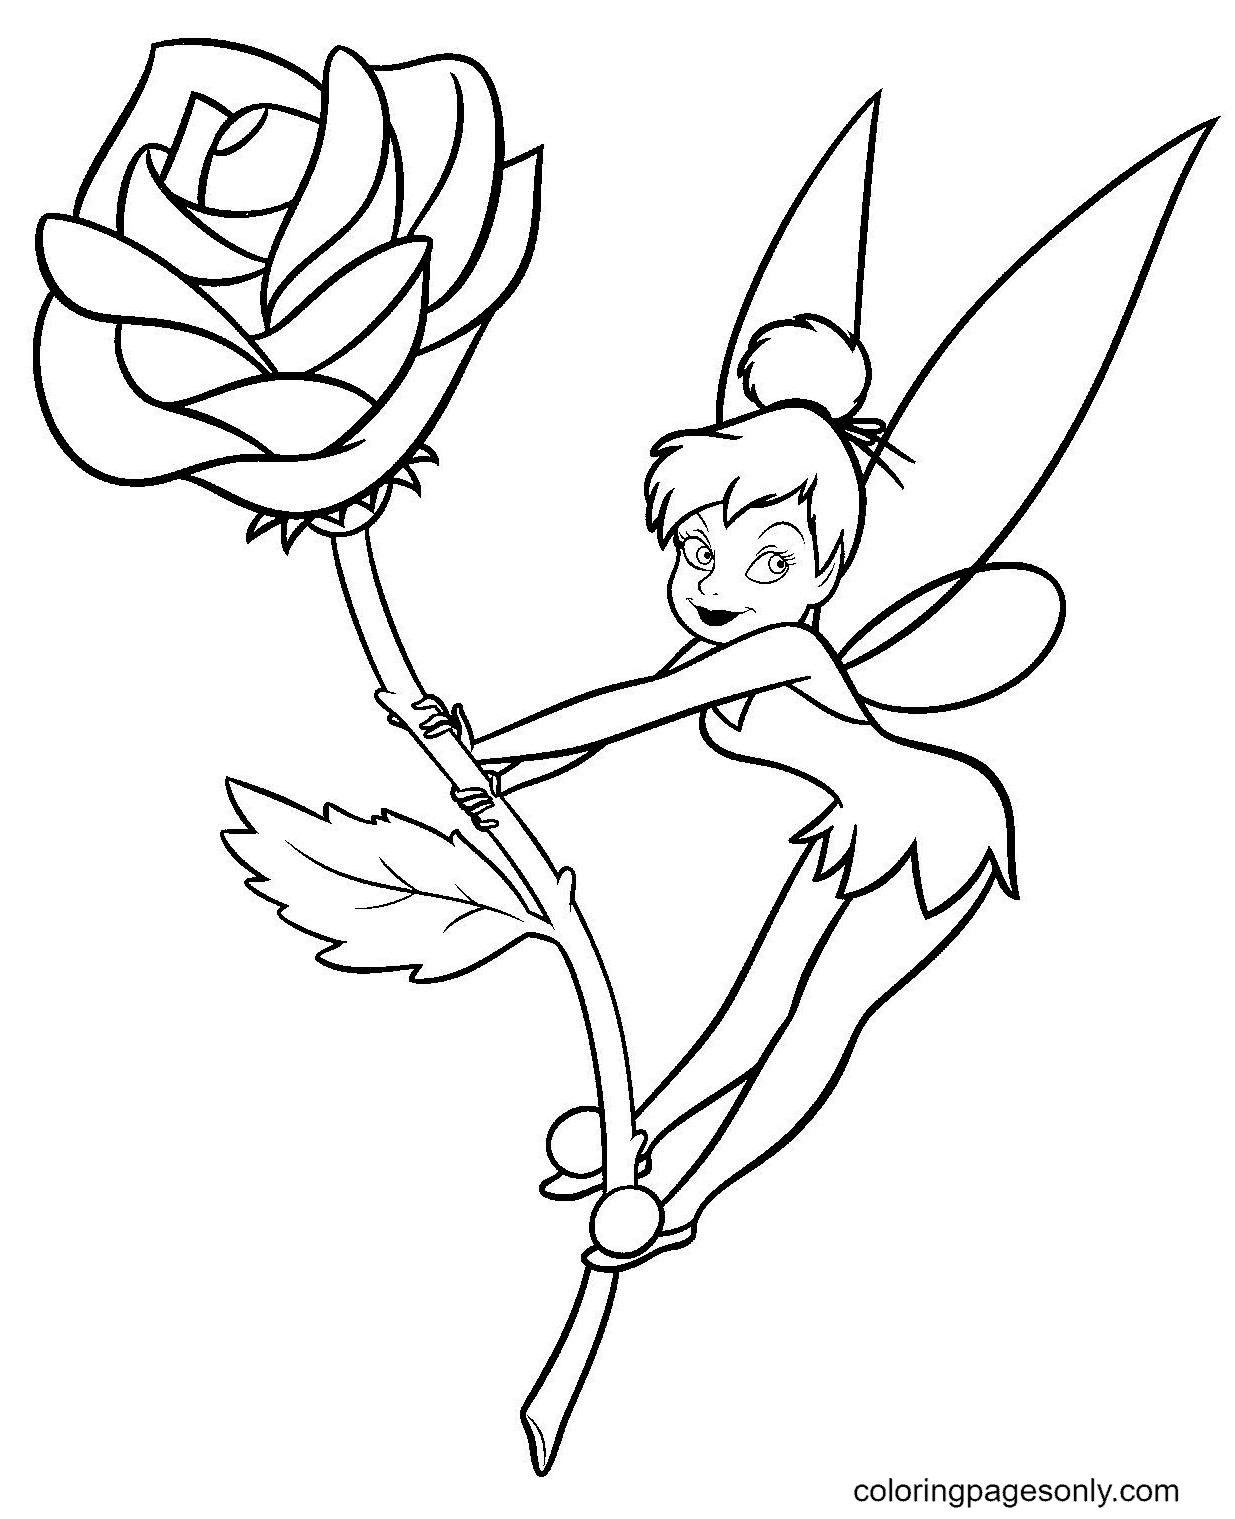 Tinkerbell on a Flower Rose Coloring Page